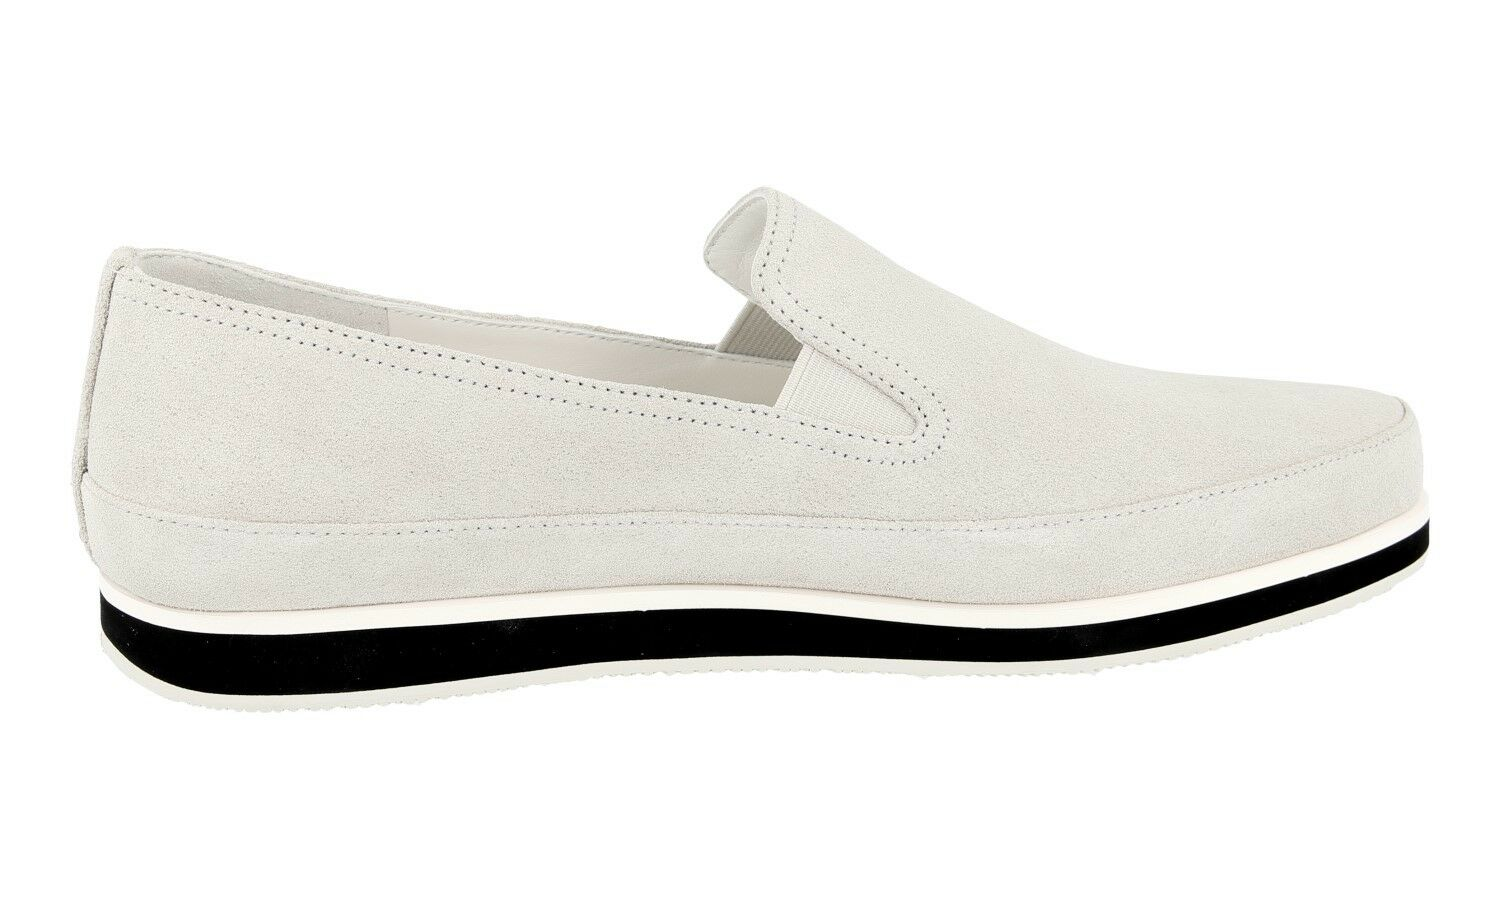 AUTH LUXURY PRADA baskets LOAFER LOAFER LOAFER chaussures 3S5749 NUBE NEW US 10 EU 40 40,5 UK 7 5c644f